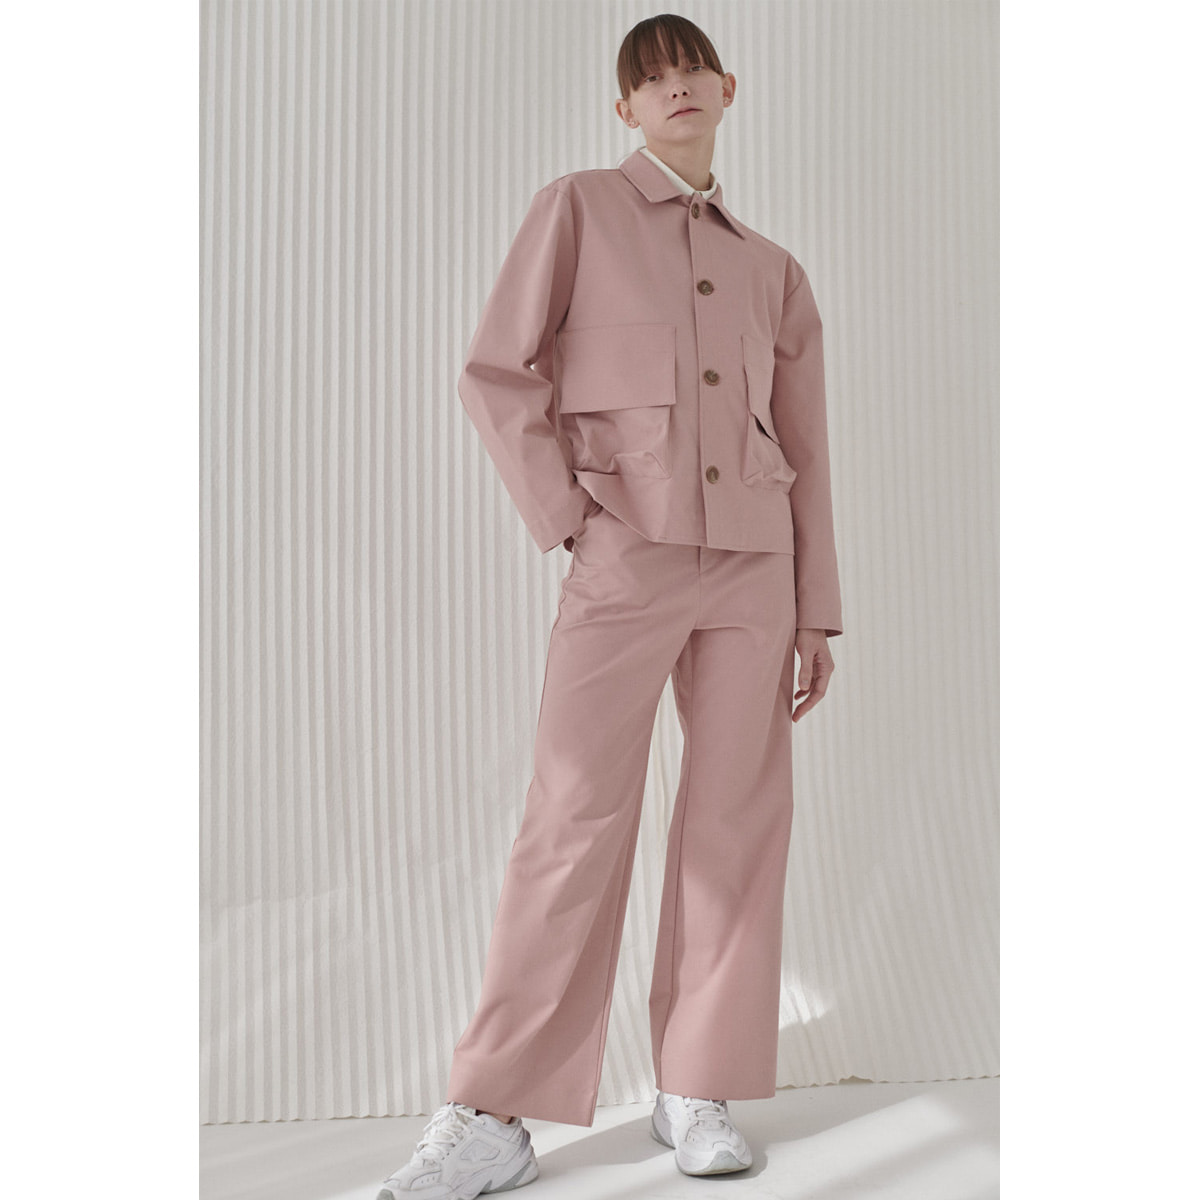 POCKETO TROUSERS | dusty pink